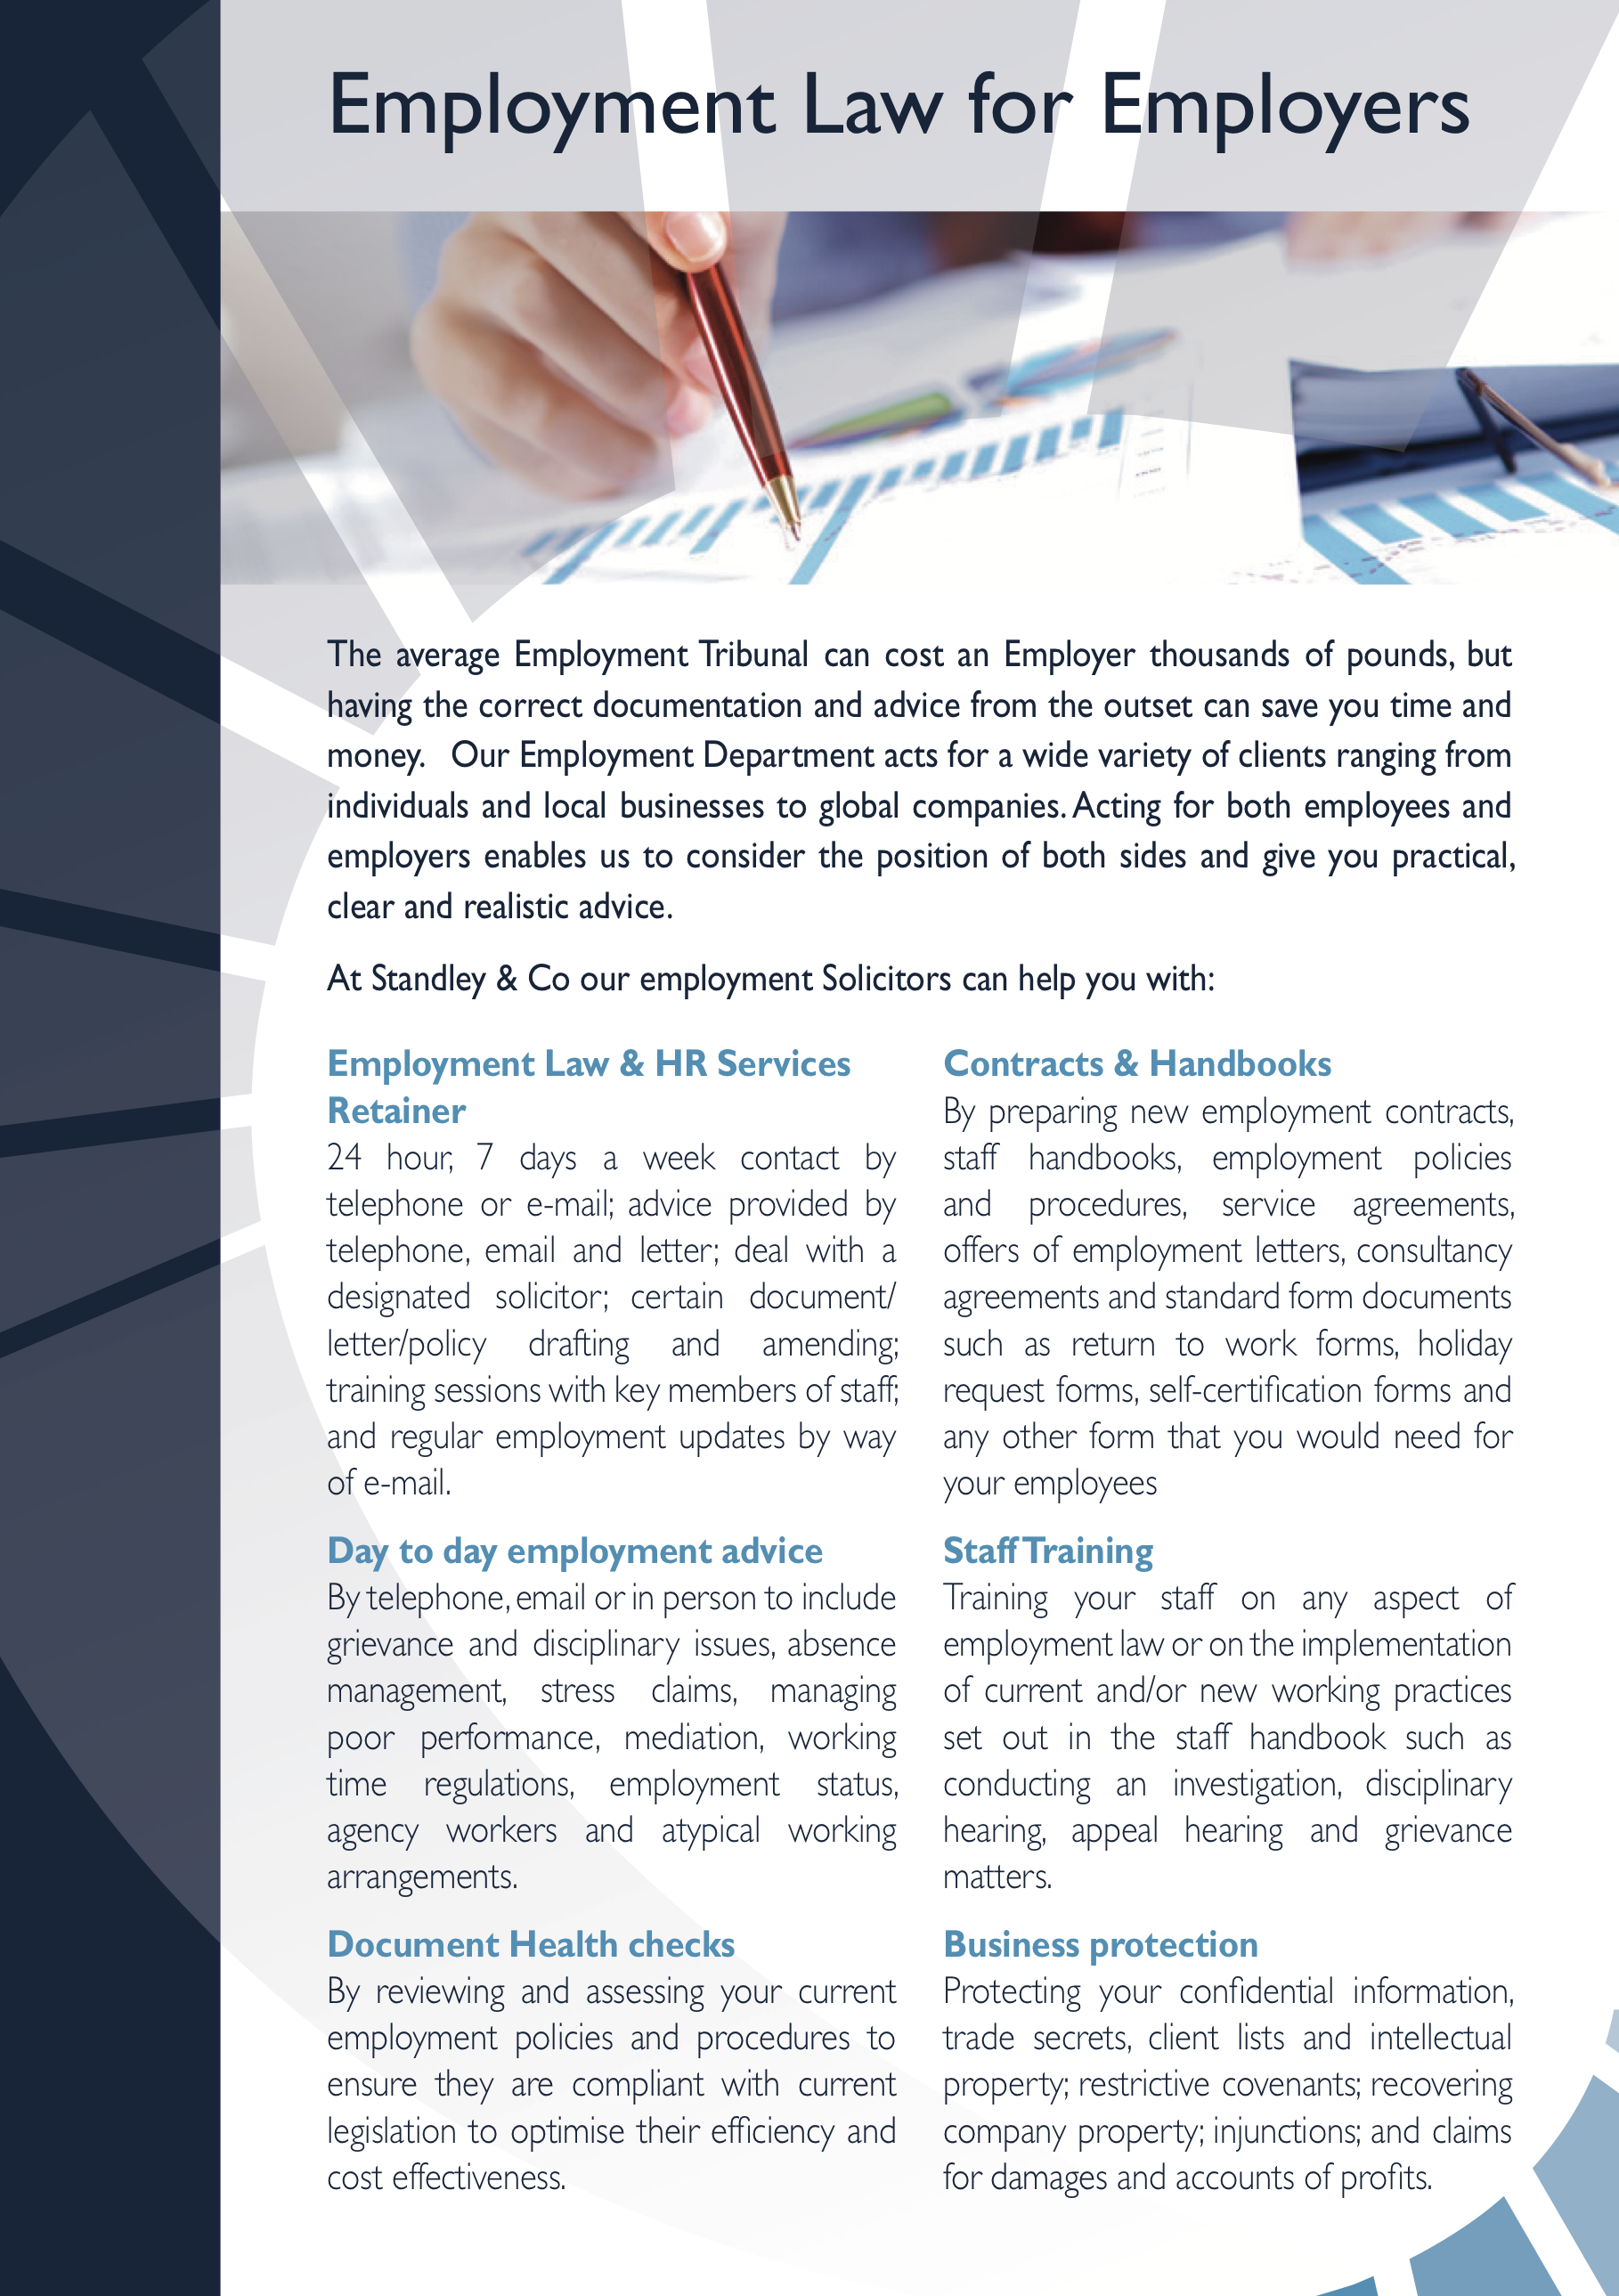 Employment Law - Employers